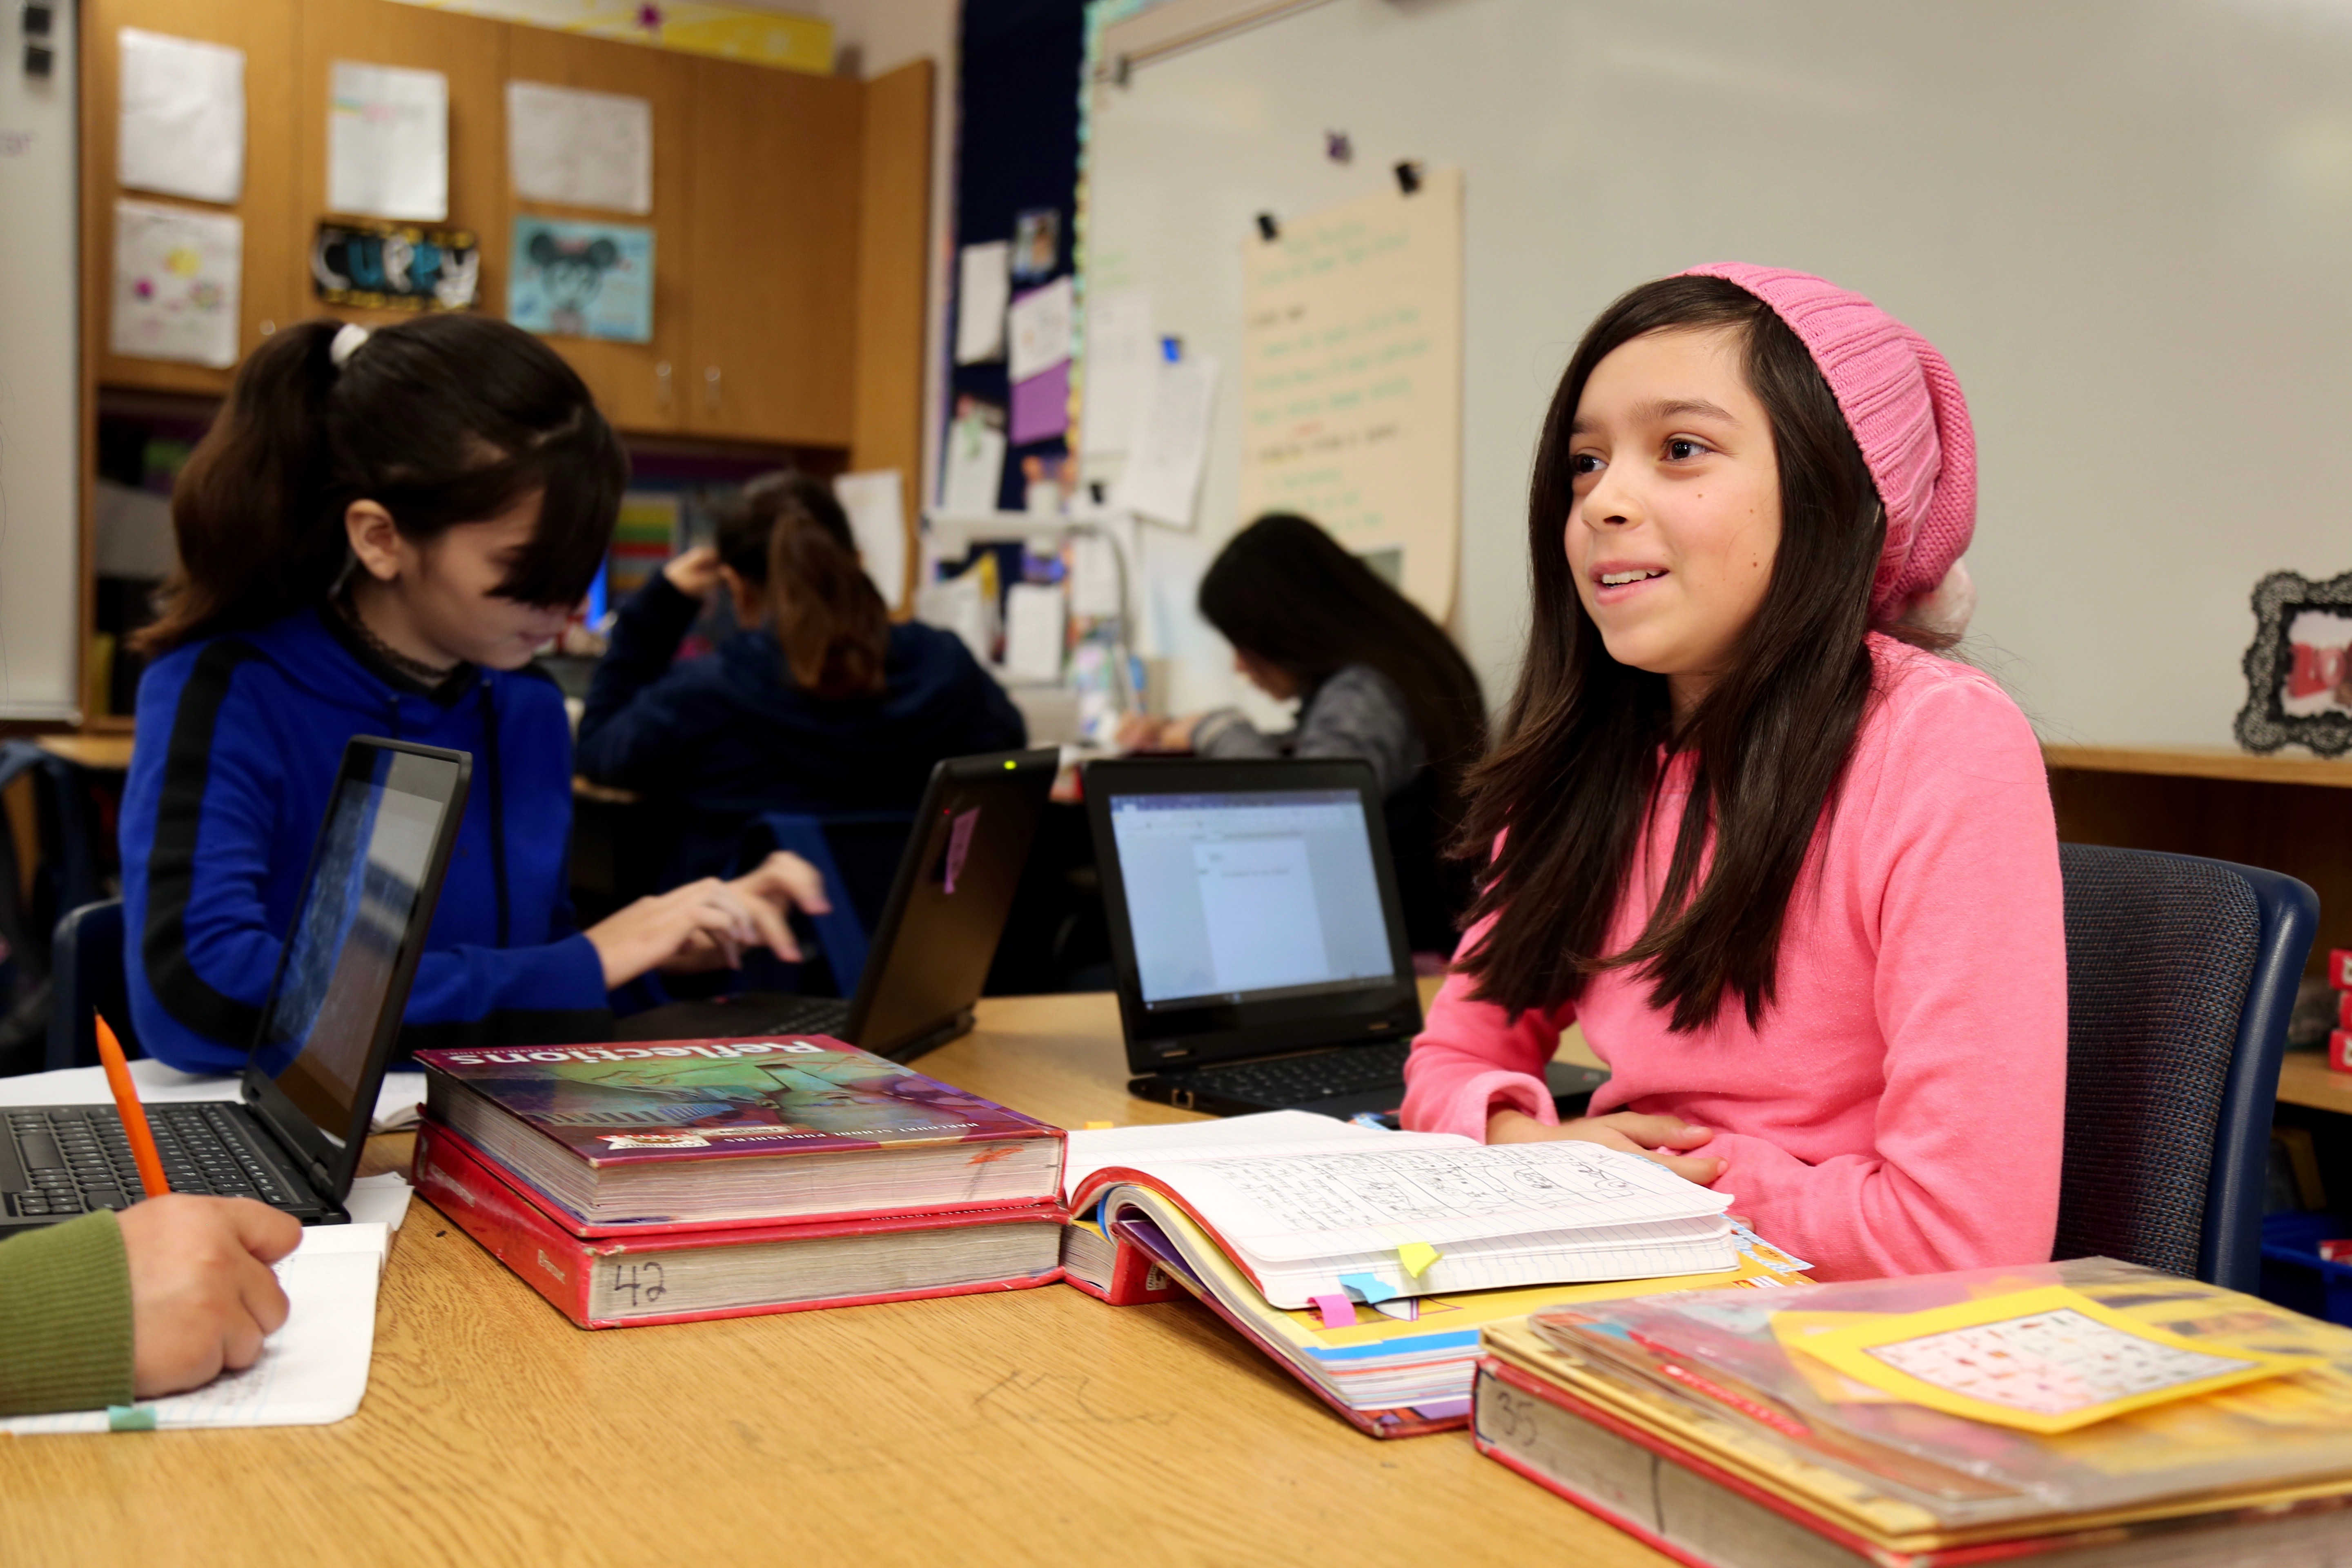 Only One Fourth Grader At California >> Multicultural Kids In Safe Haven School District Learn From Each